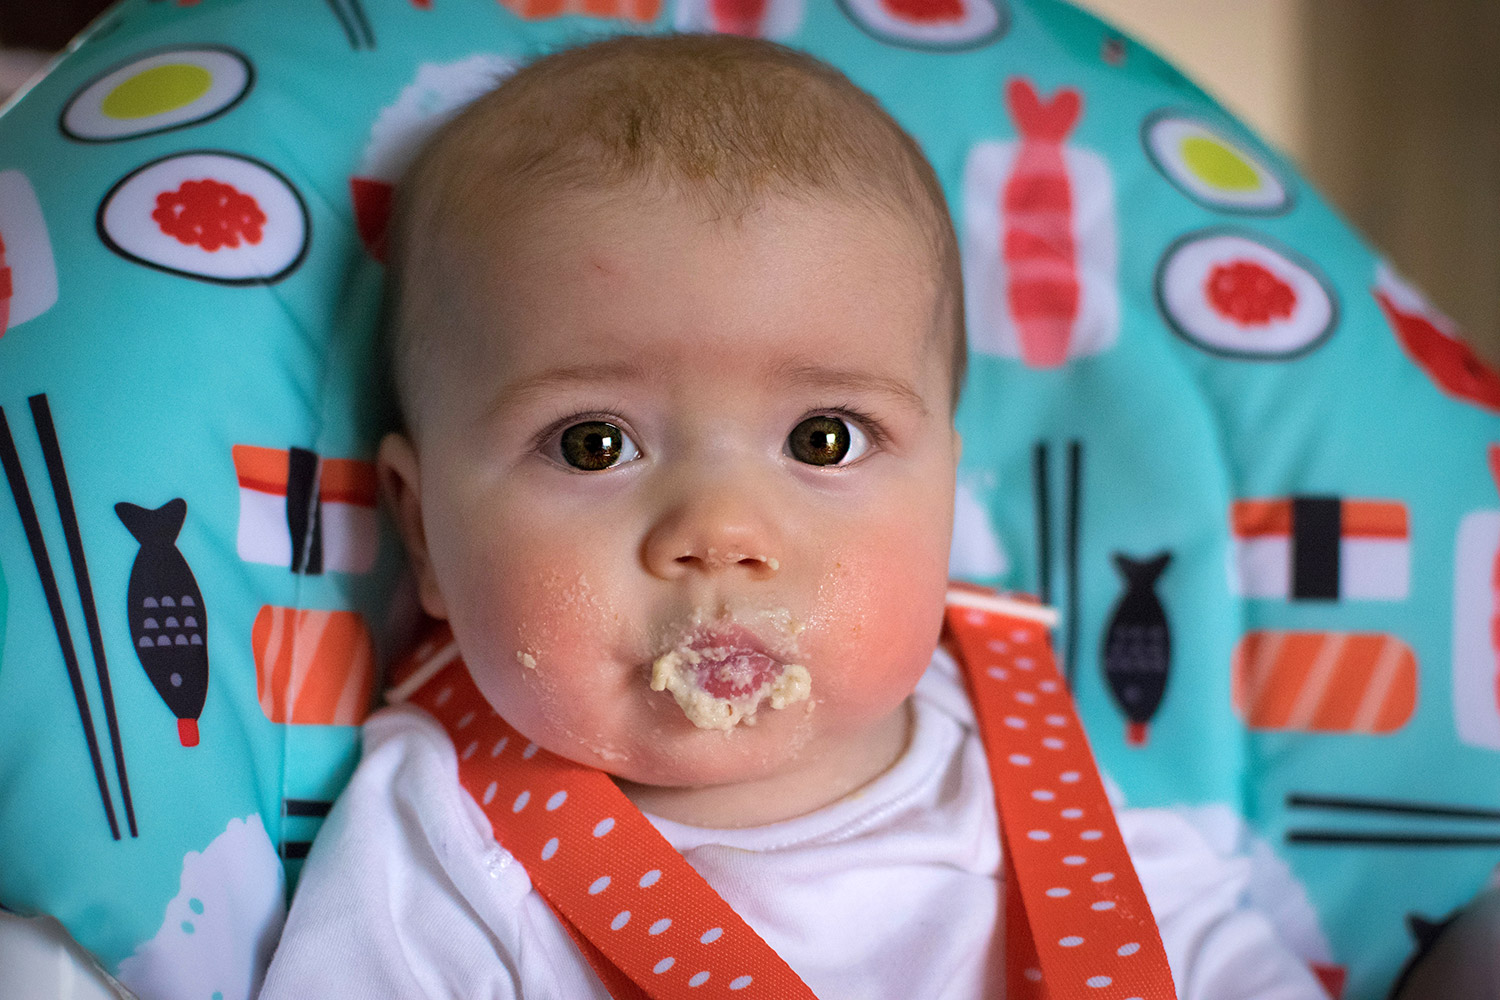 50 days of weaning with Cosatto - 7 month old baby boy sitting in his Cosatto 3sixti2 highchair in chopsticks eating porridge